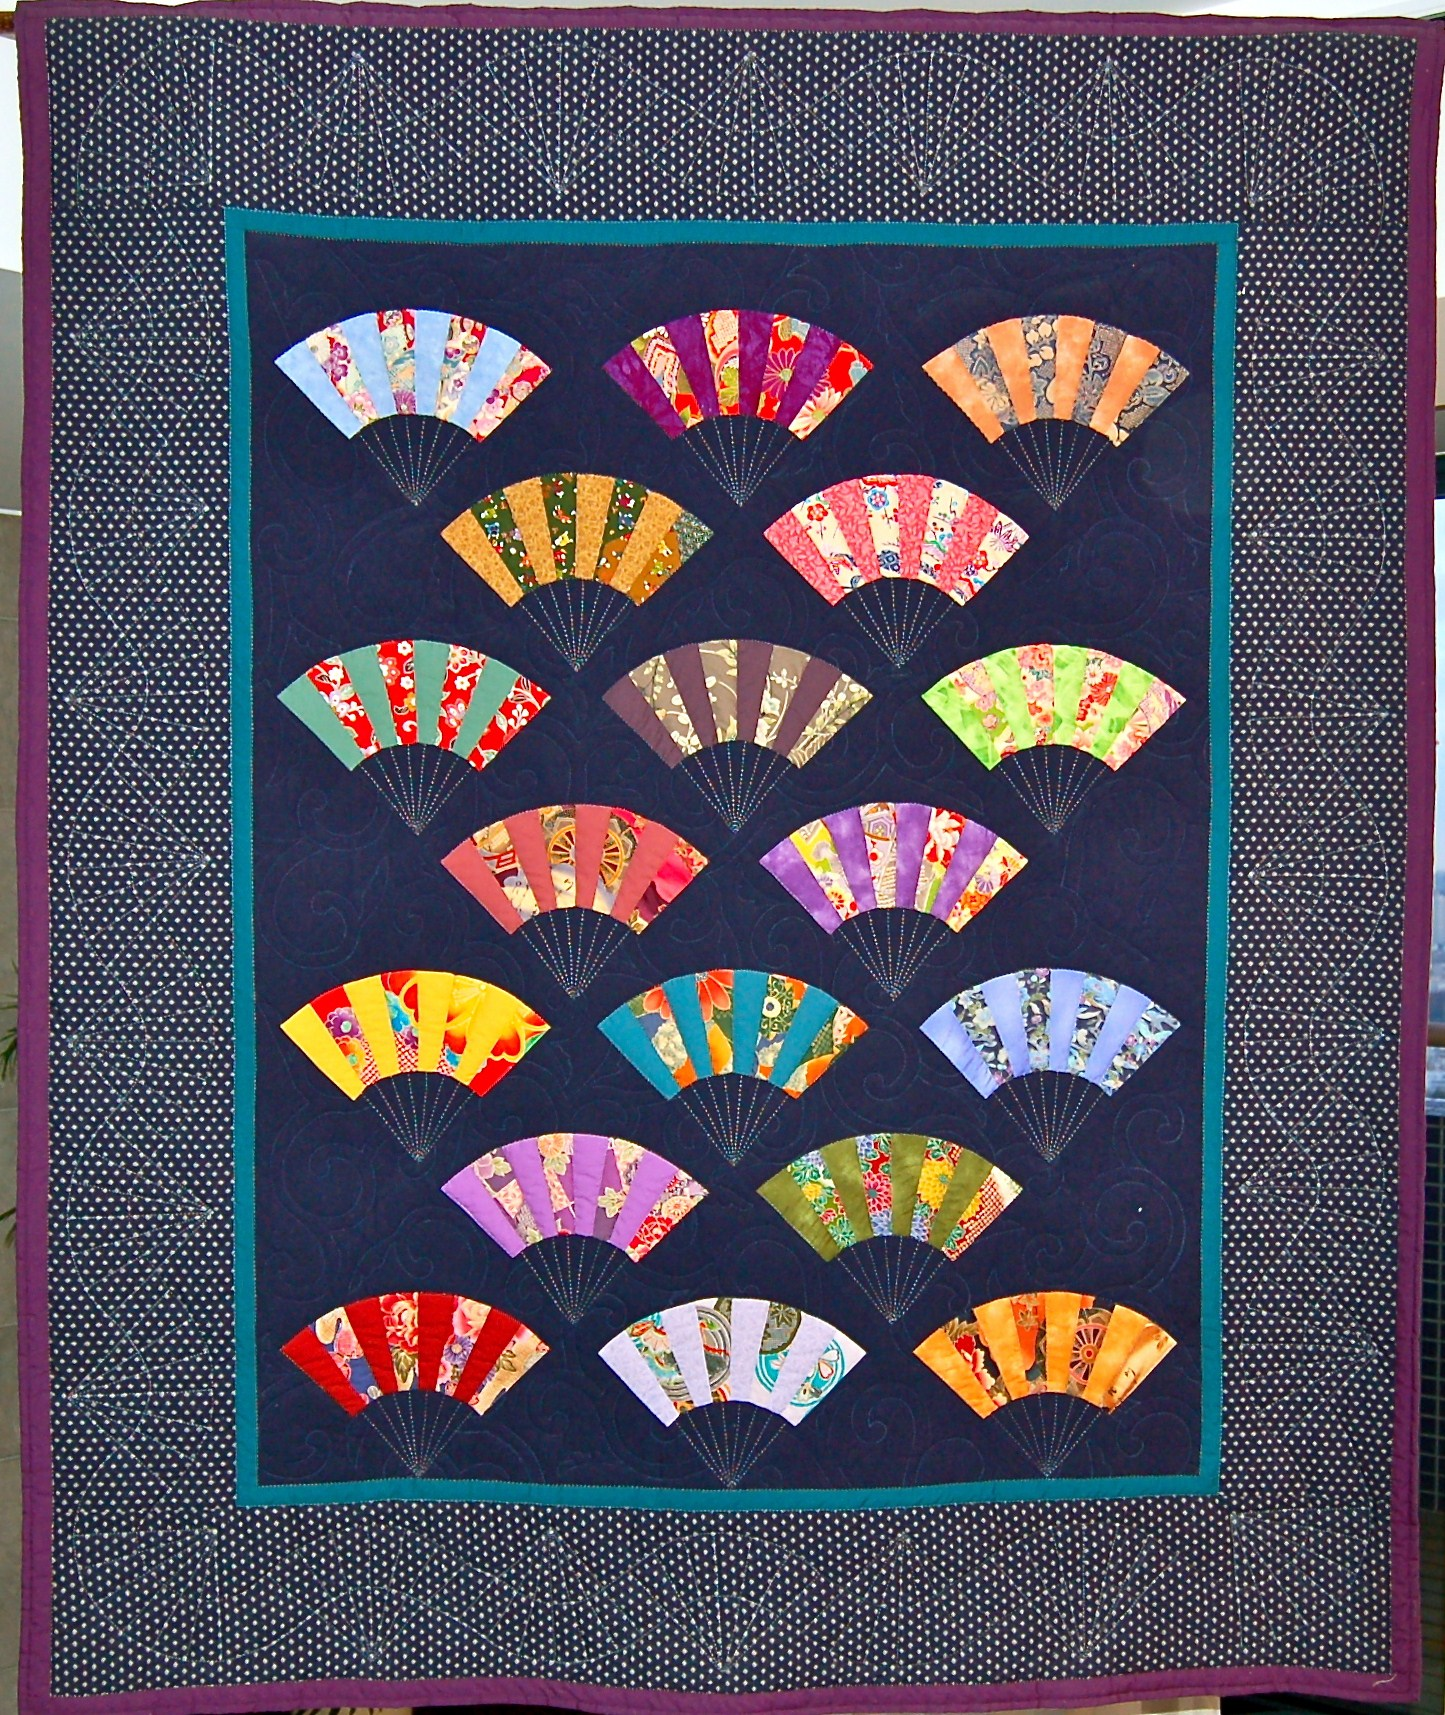 Japanese Fan Quilt http://tokyojinja.com/2011/03/06/coming-full-circle-a-history-of-the-asij-gala-quilt/